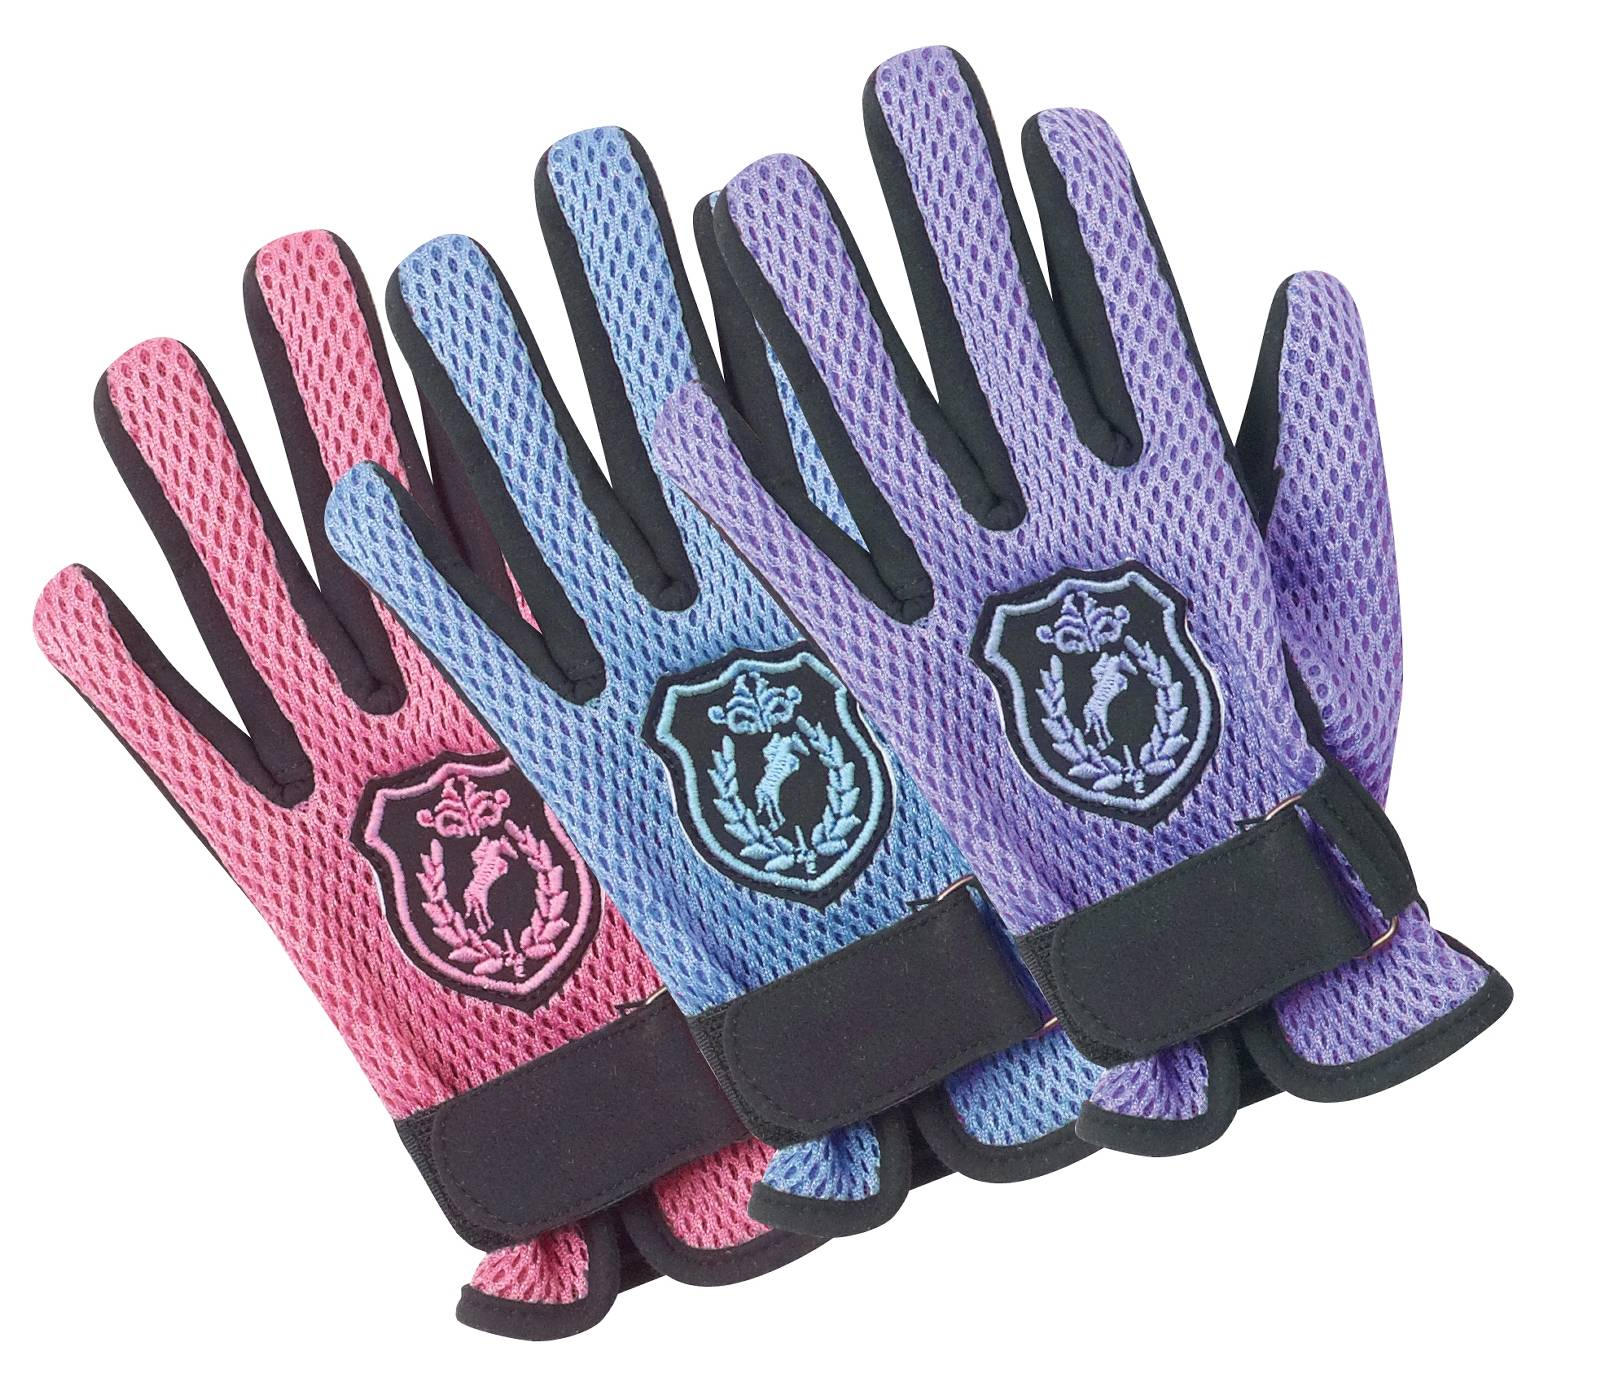 Ovation Kids Mesh Back Glove Horse Crest